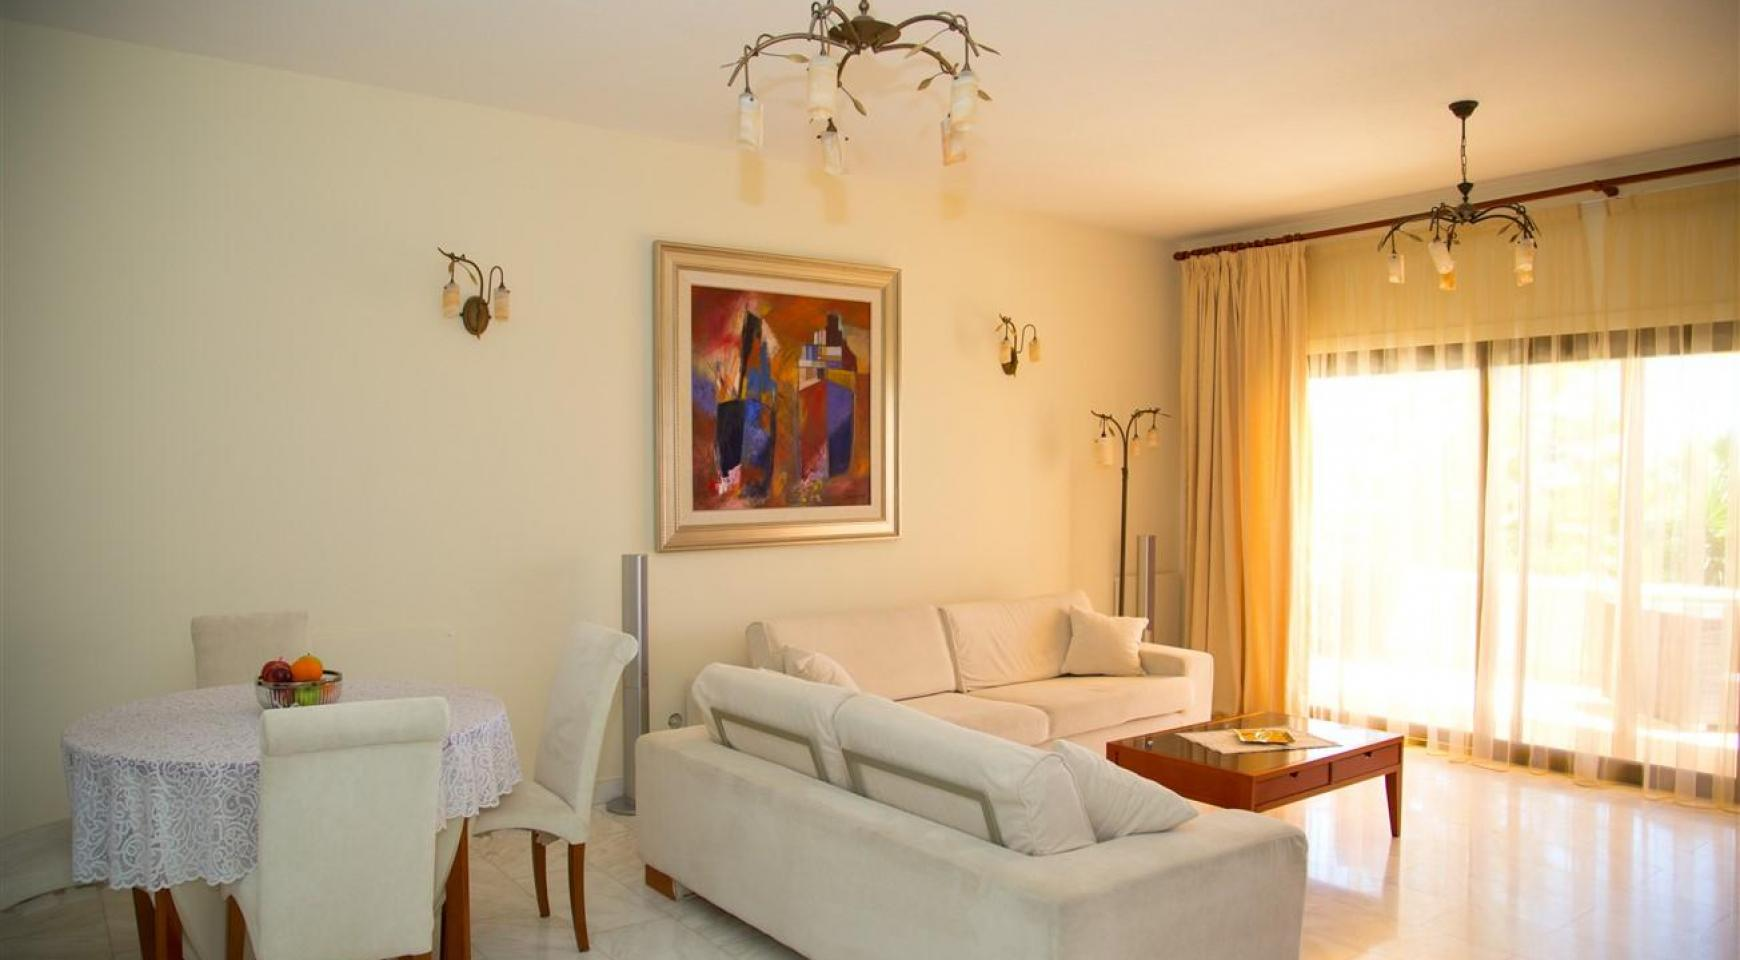 3 Bedroom Apartment in a Gated Complex by the Sea - 22